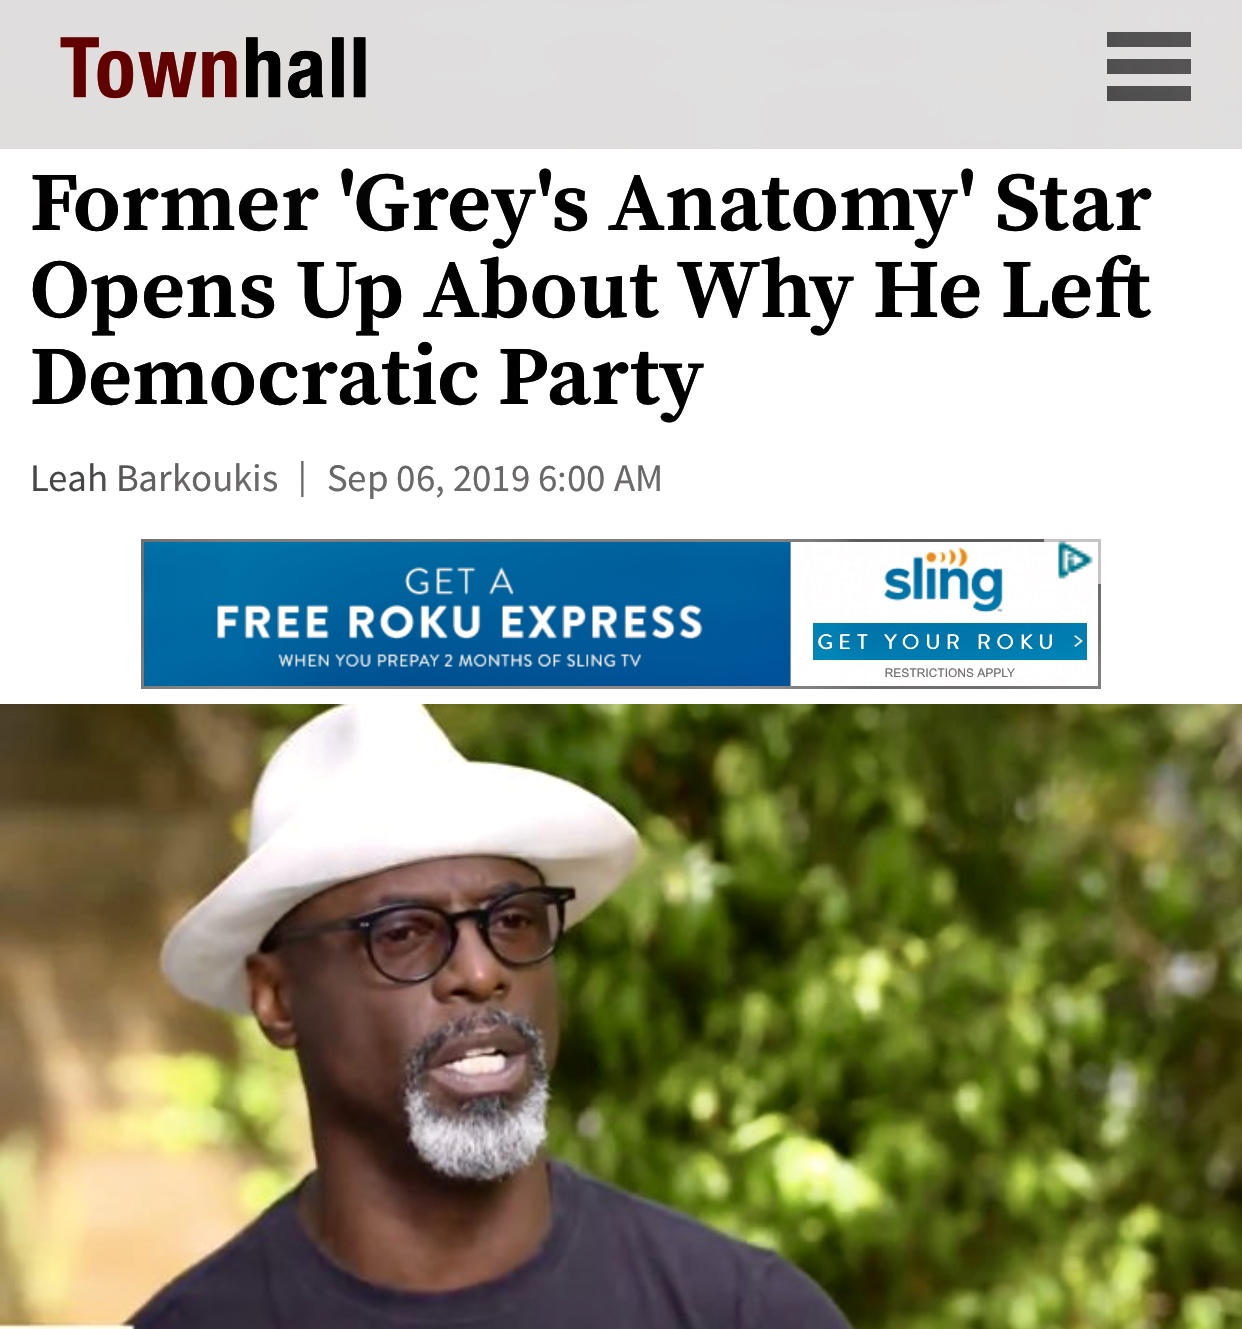 Former 'Grey's Anatomy' Star Opens Up About Why He Left Democratic Party